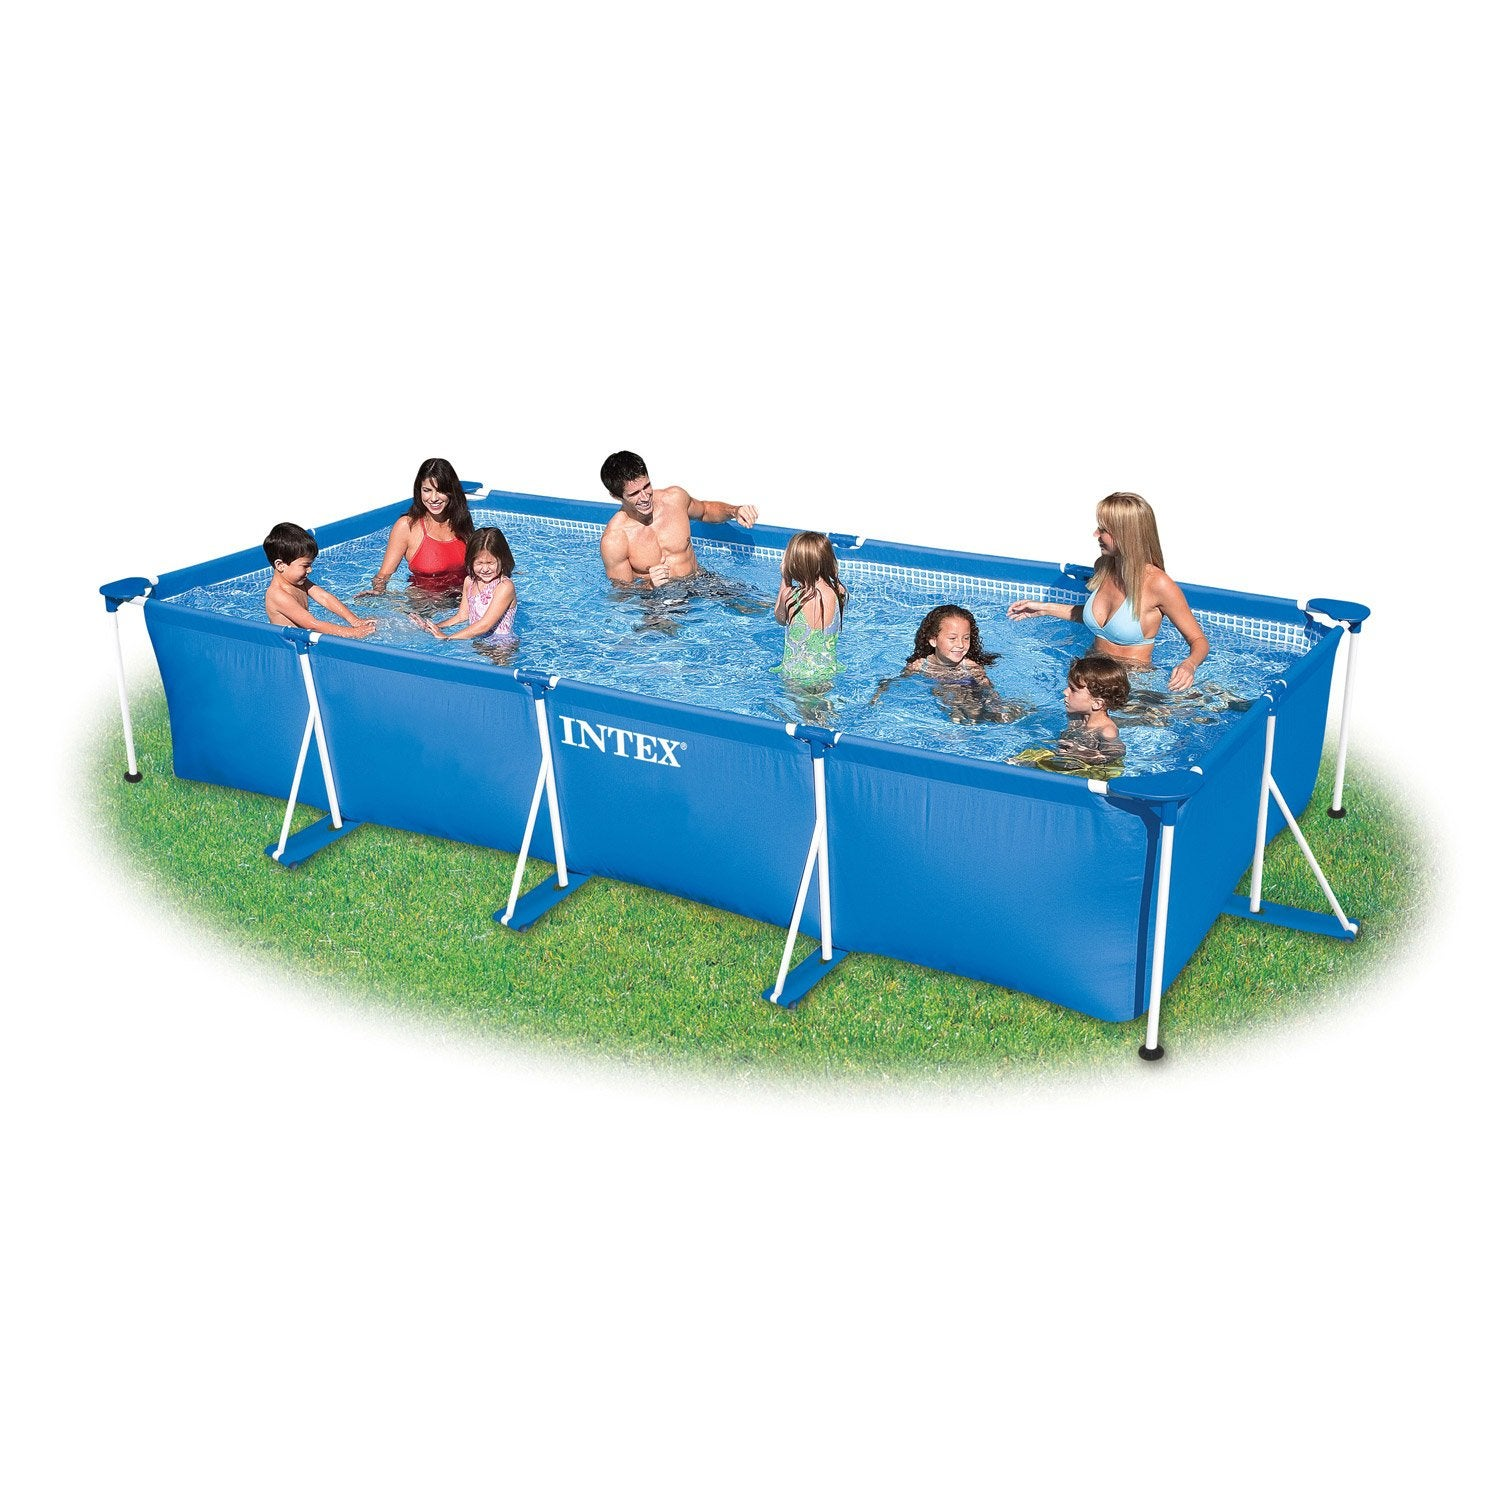 Piscine hors sol autoportante tubulaire intex l x l for Sevylor piscine hors sol